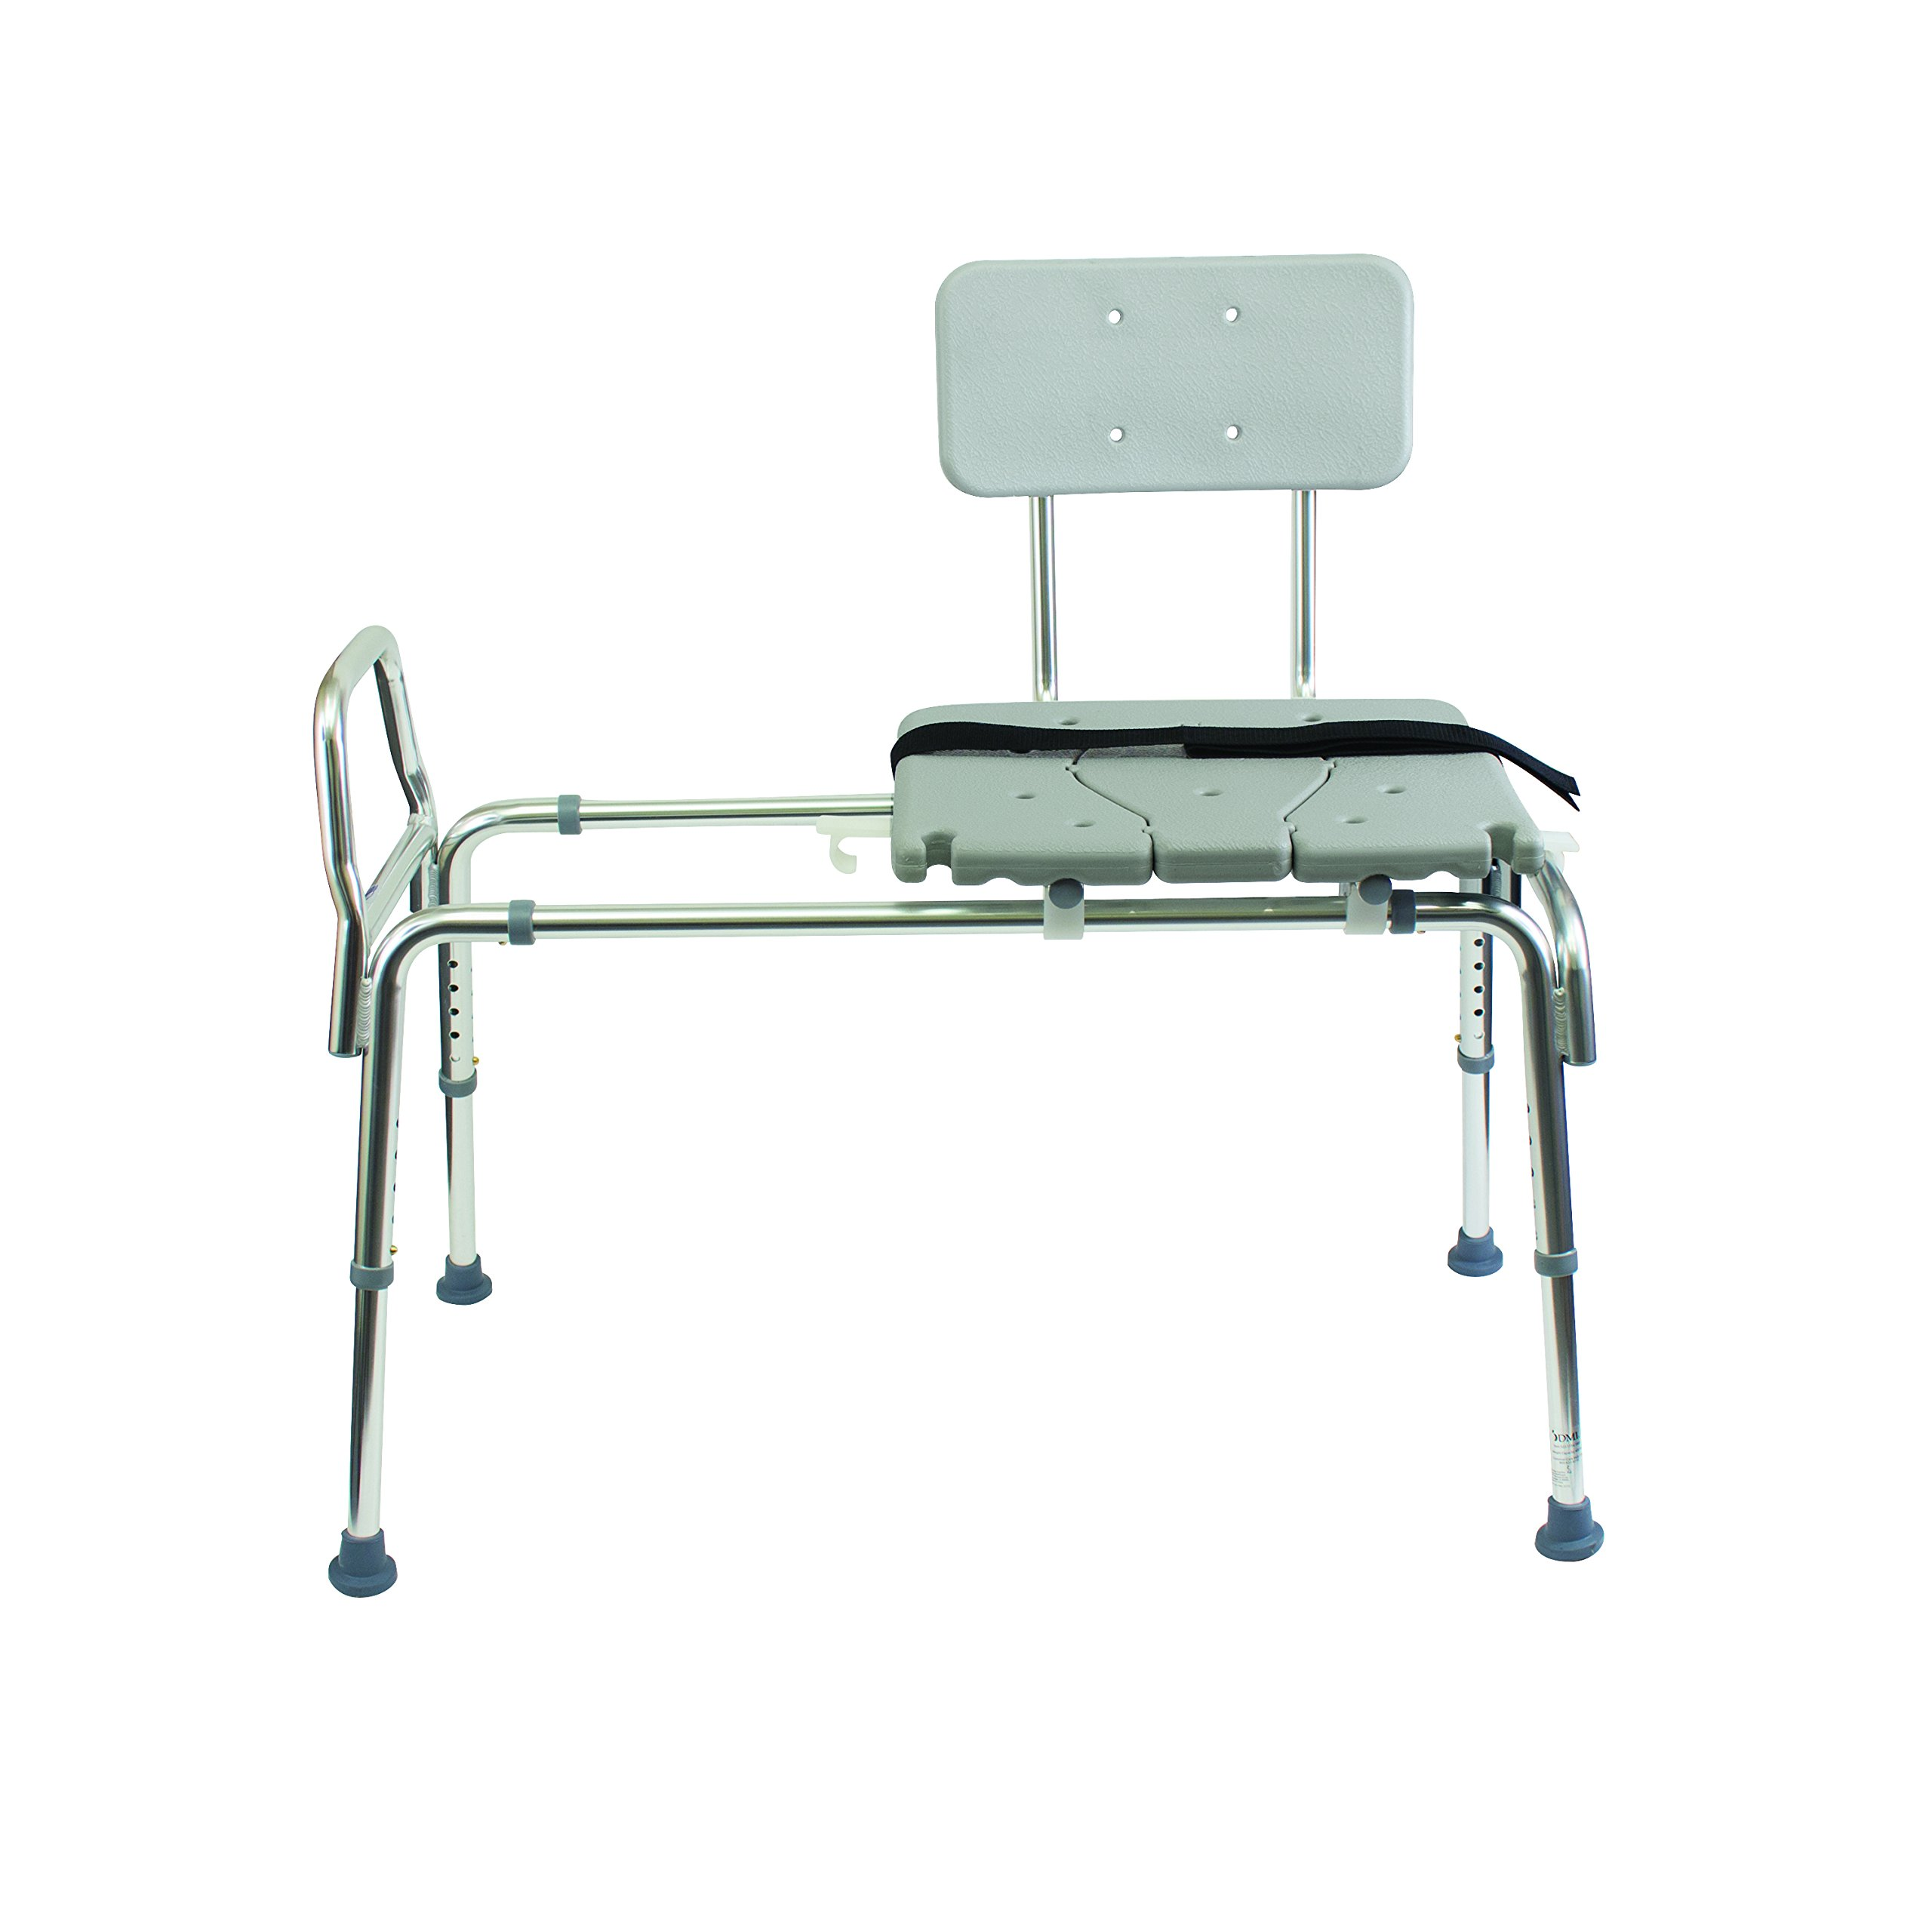 en chair shower seat dolphin product